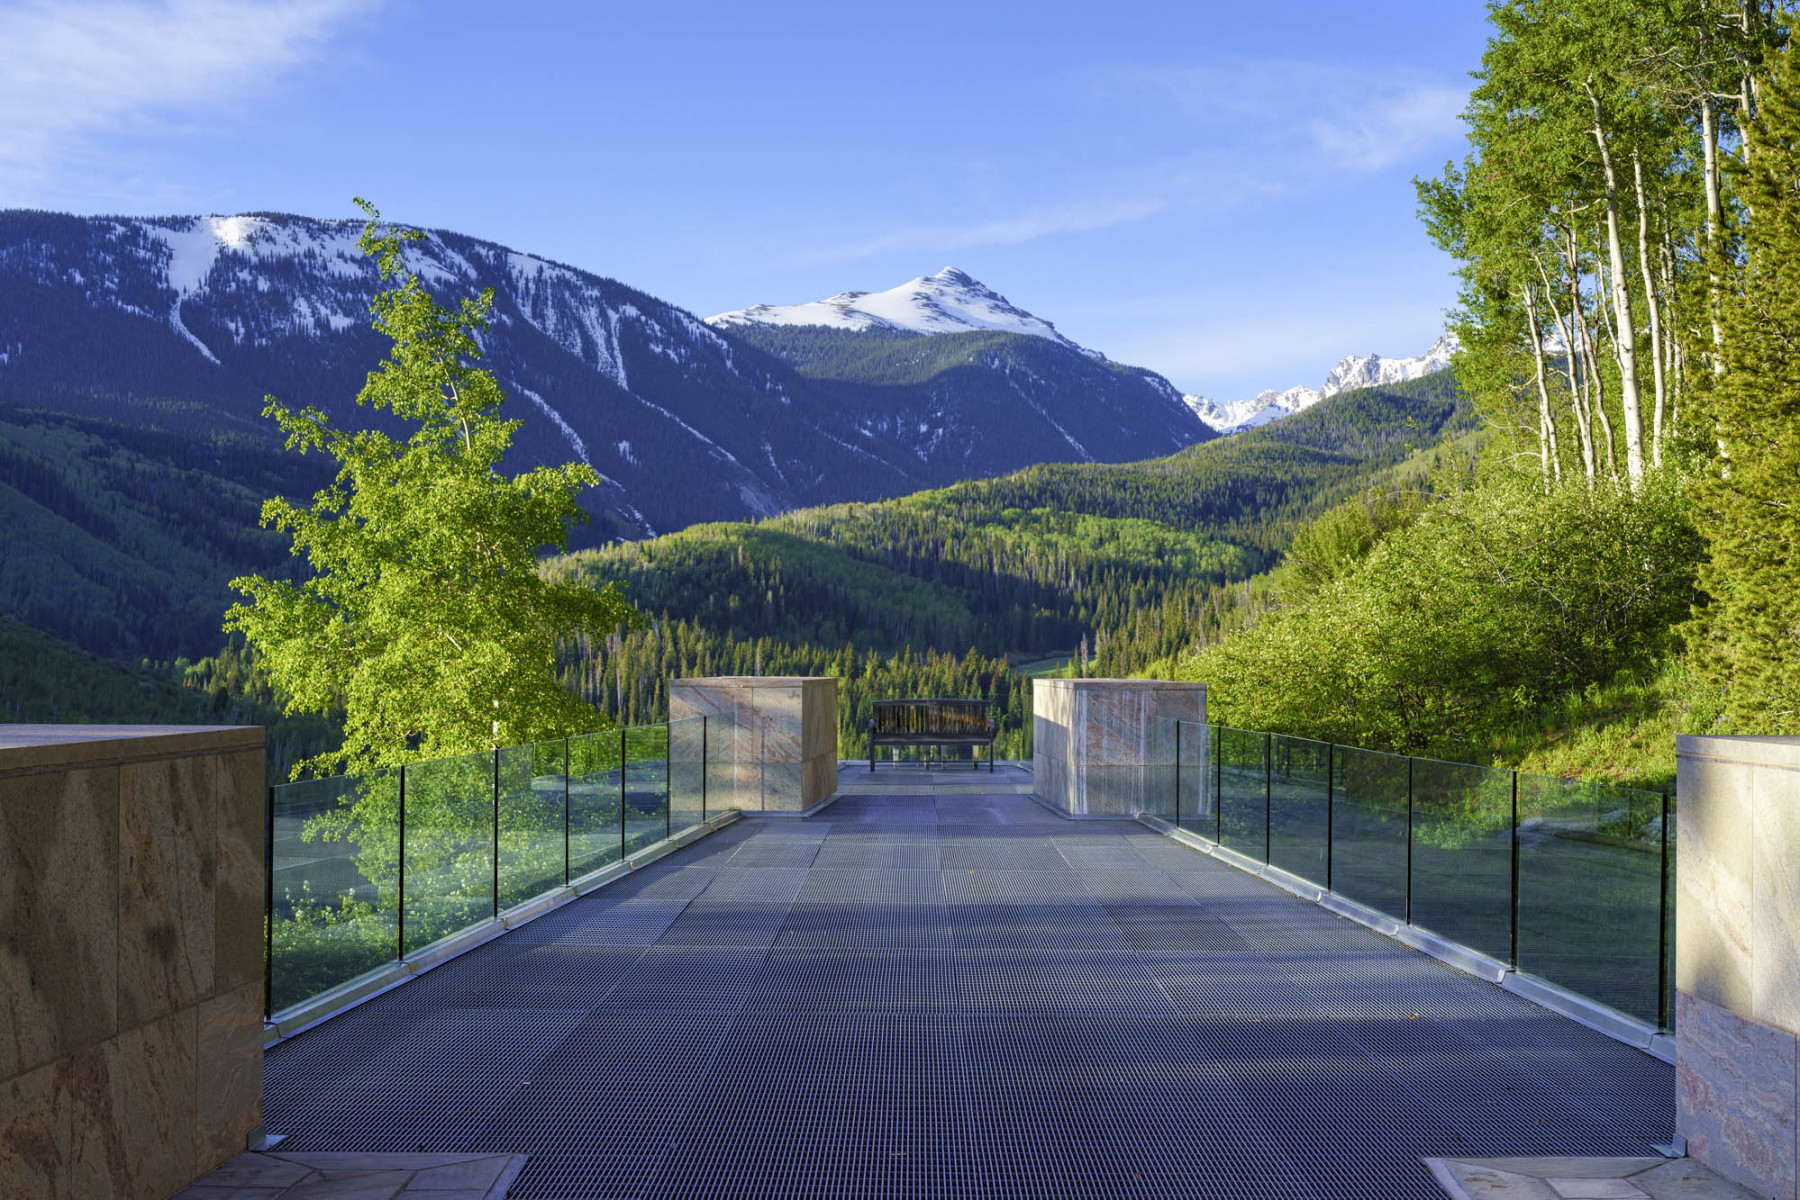 Vail-MLS-Final-Images-reordered-Malia-002